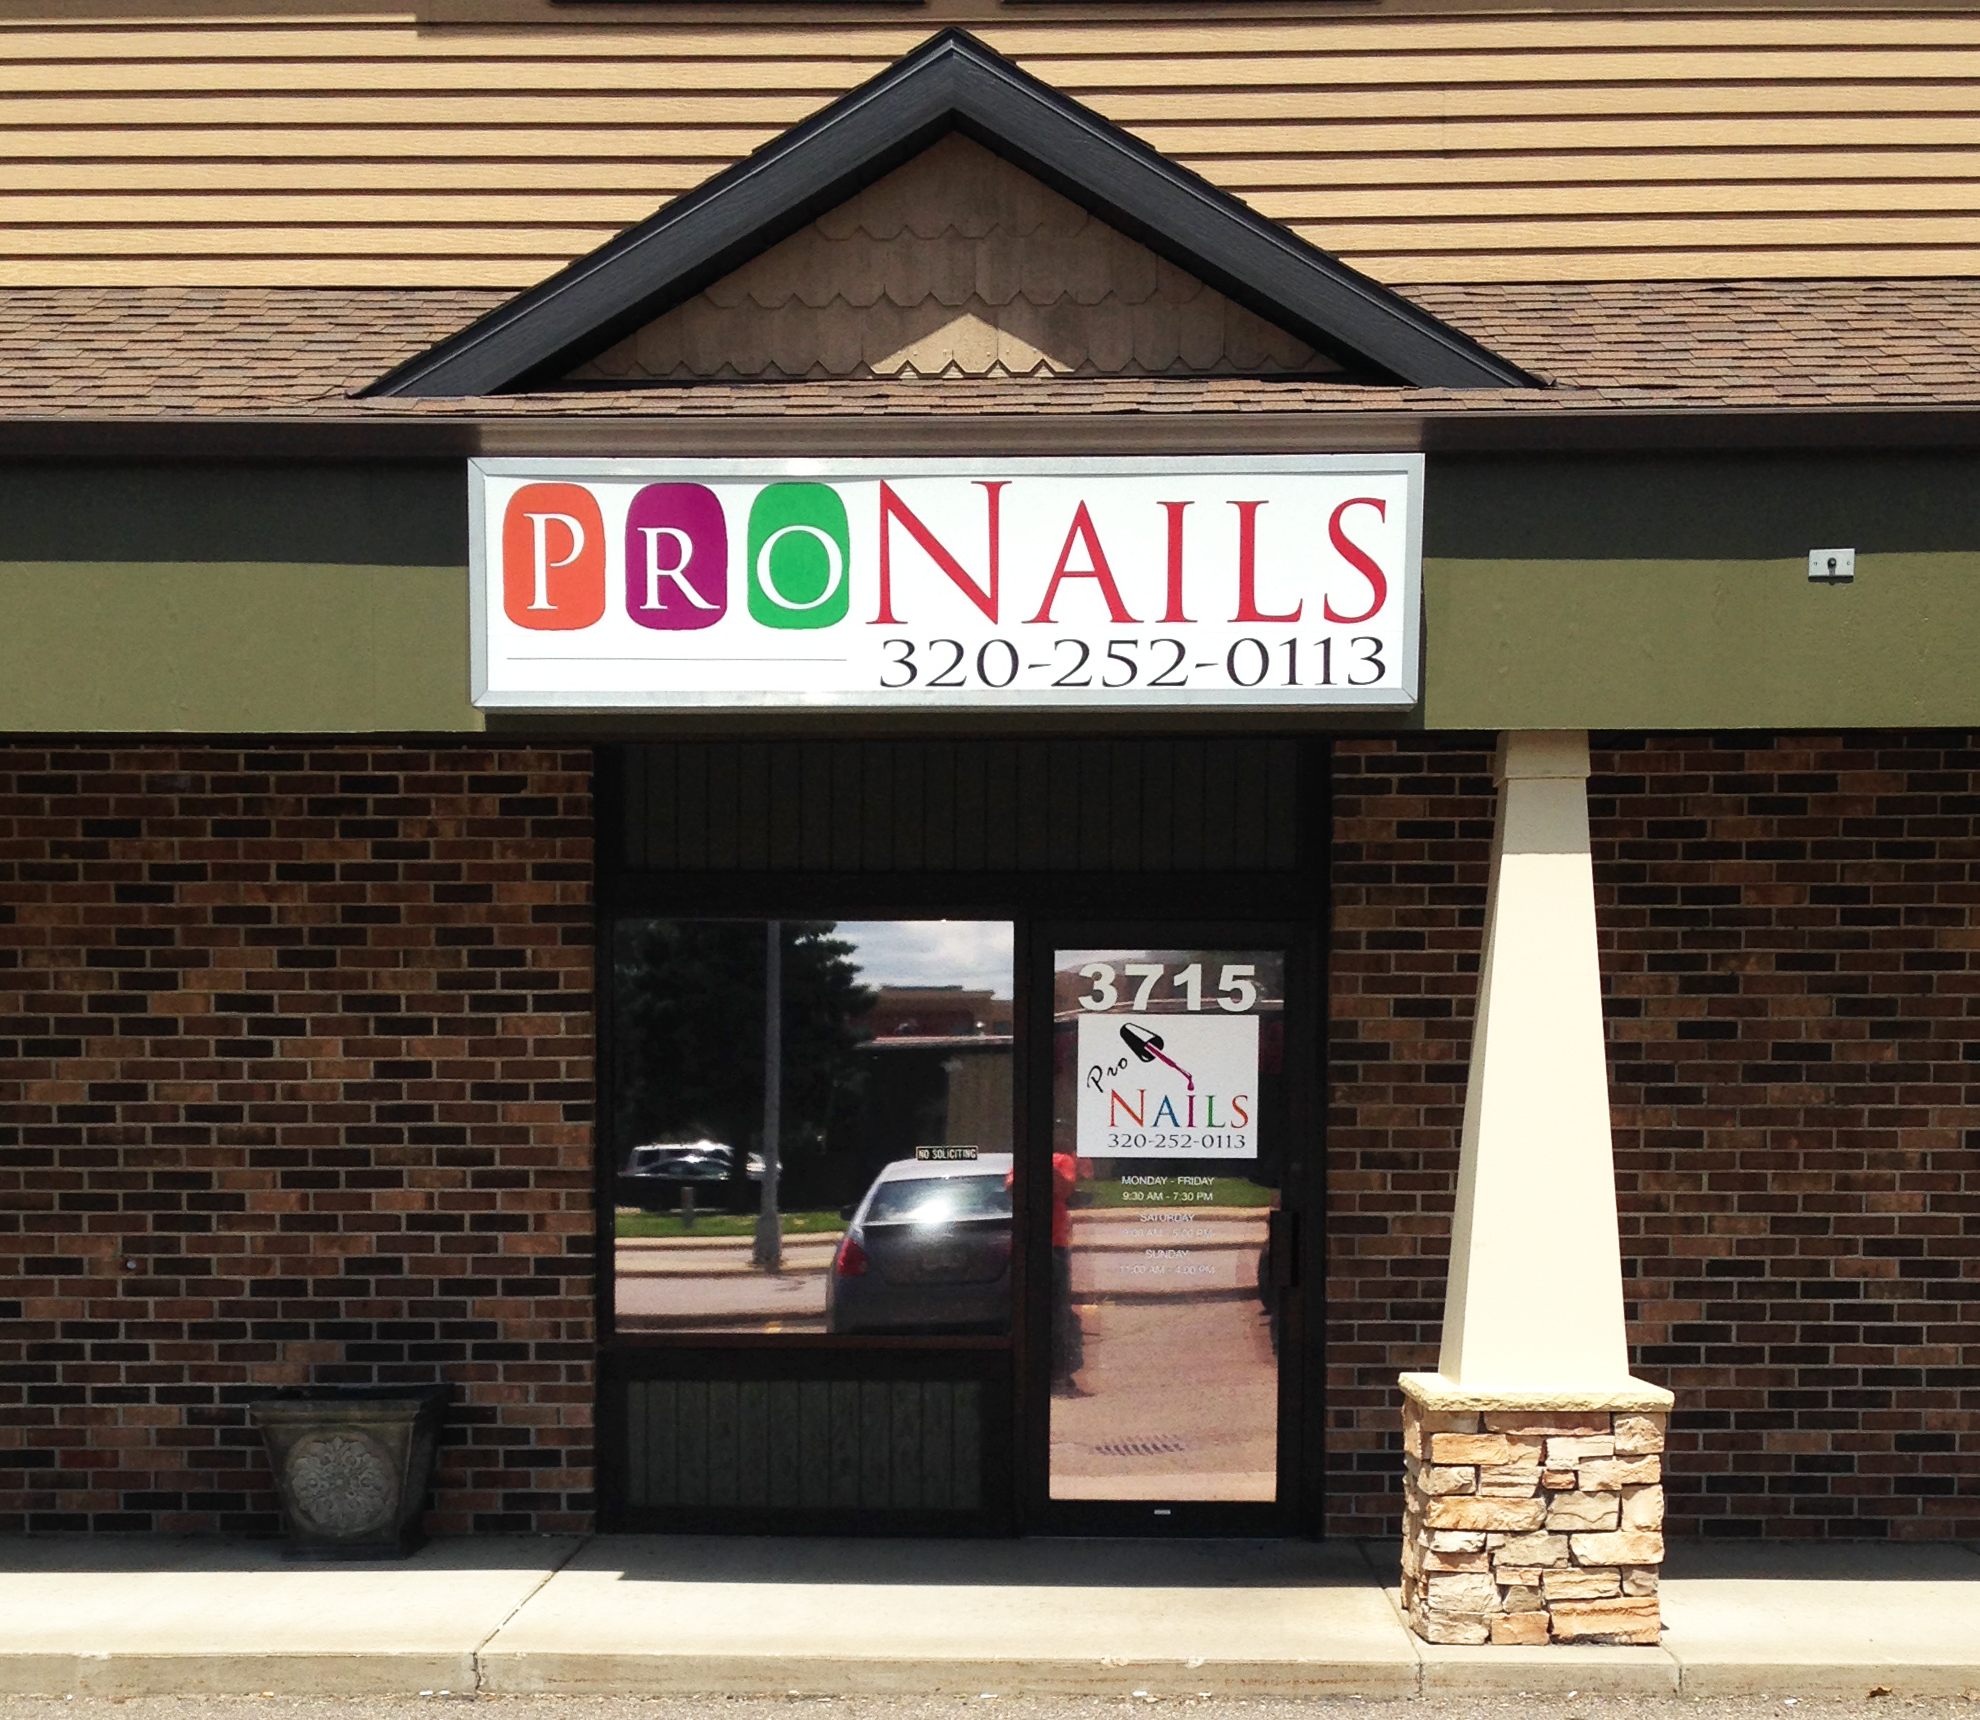 Custom Exterior Business Signage from SignMax